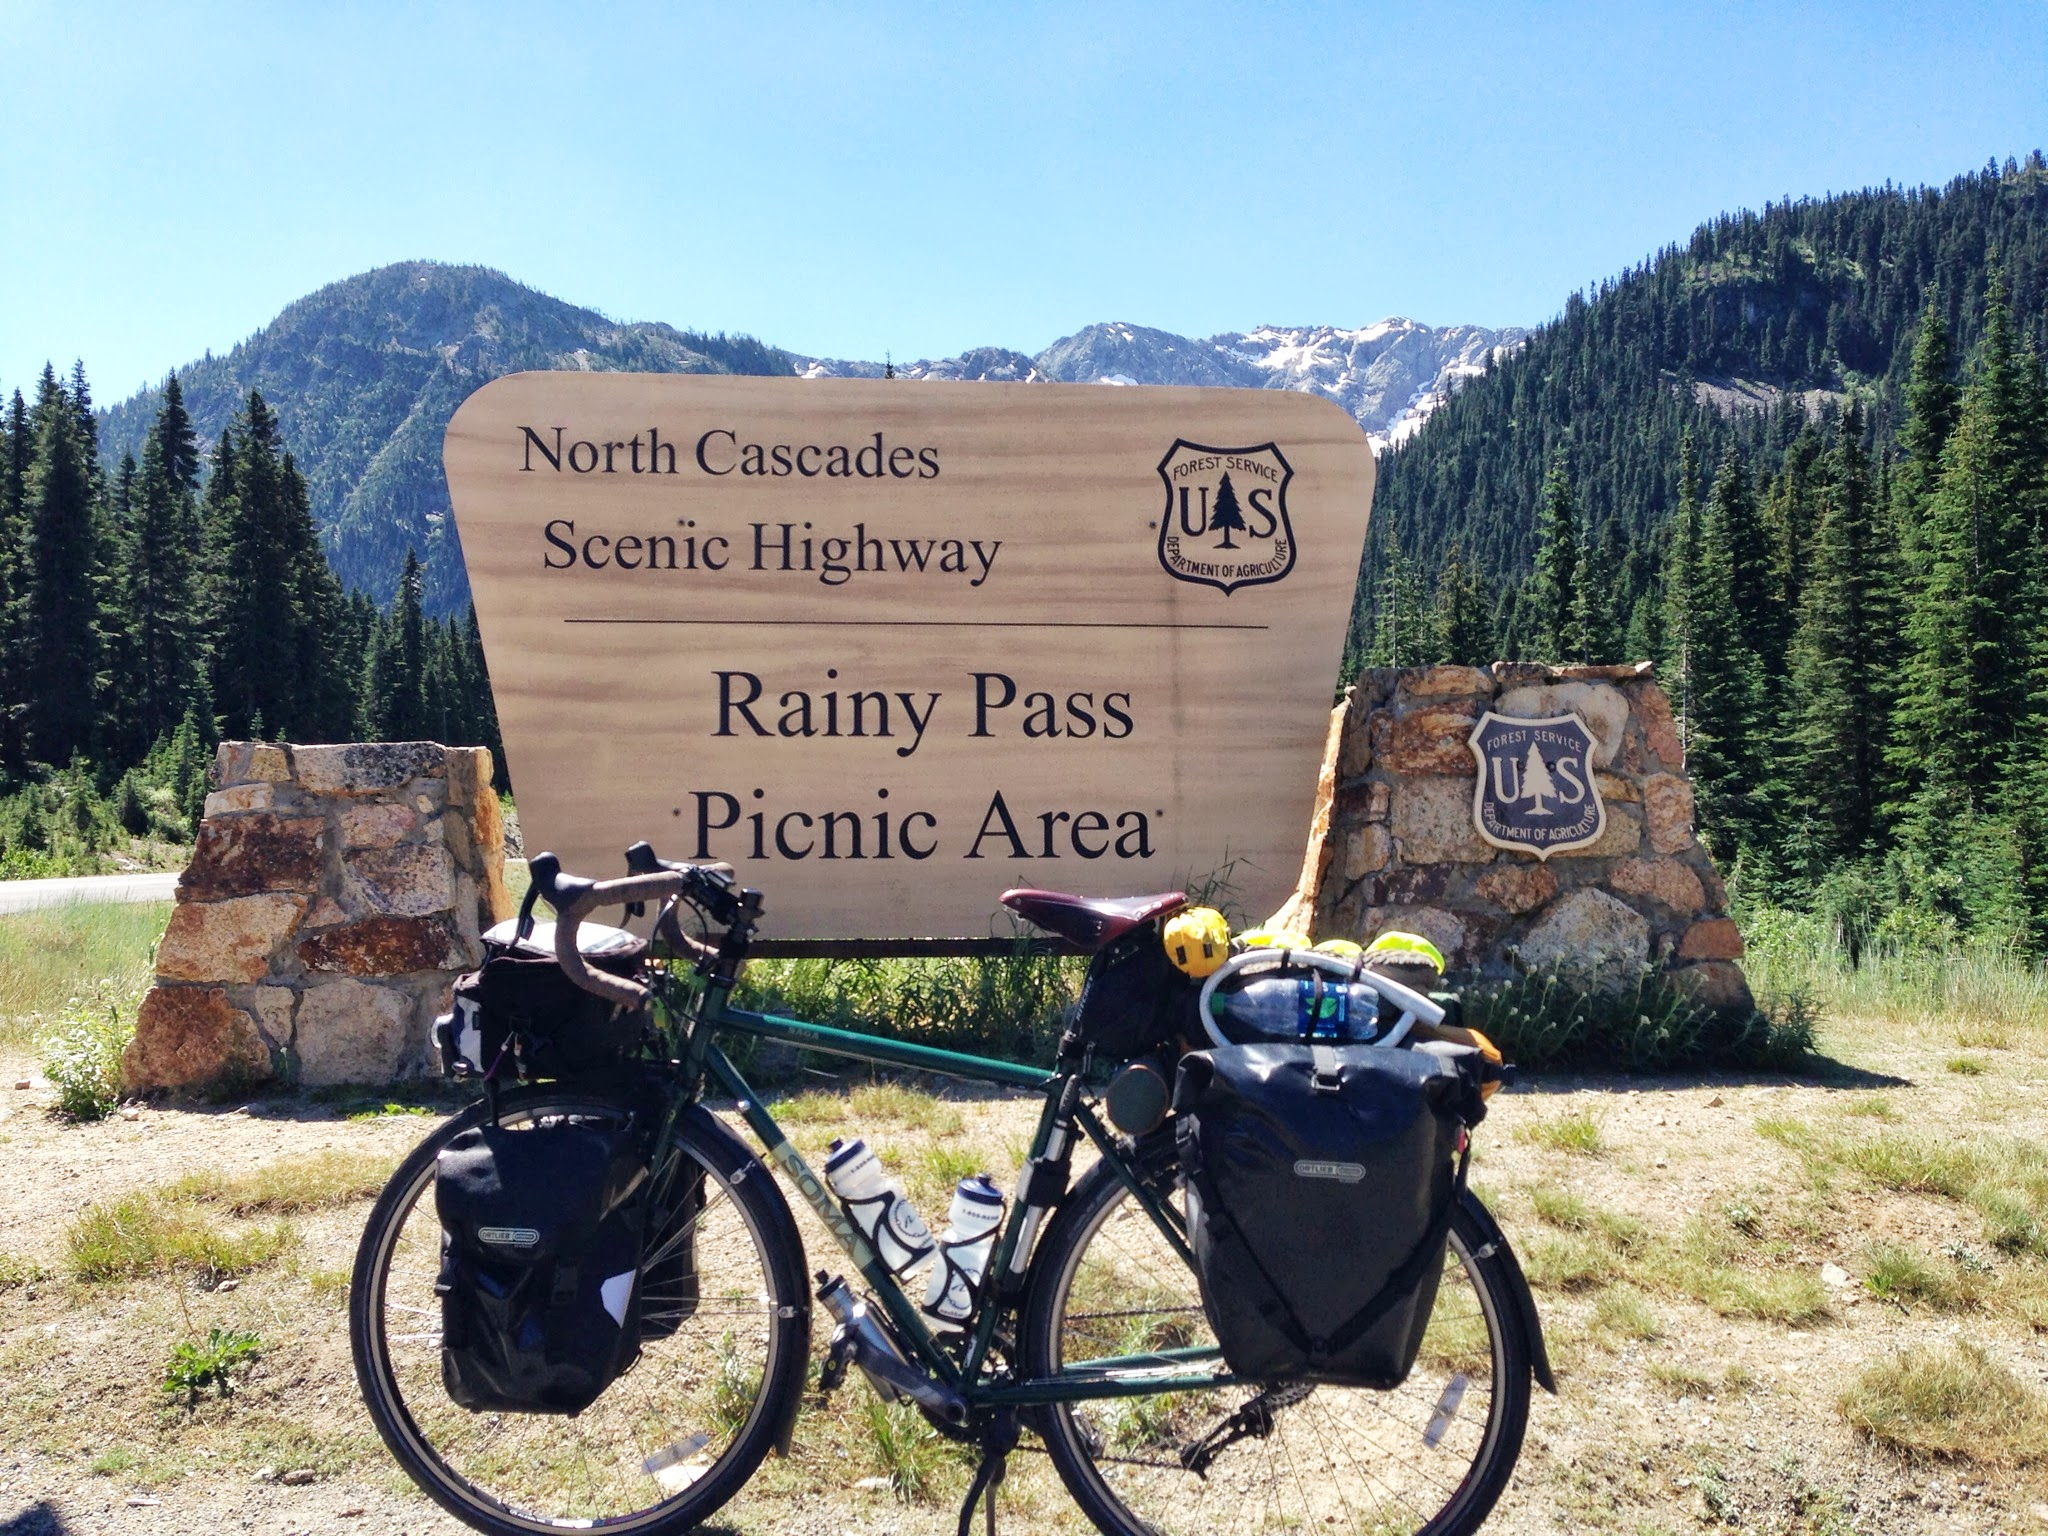 Soma Saga on North Cascades Highway